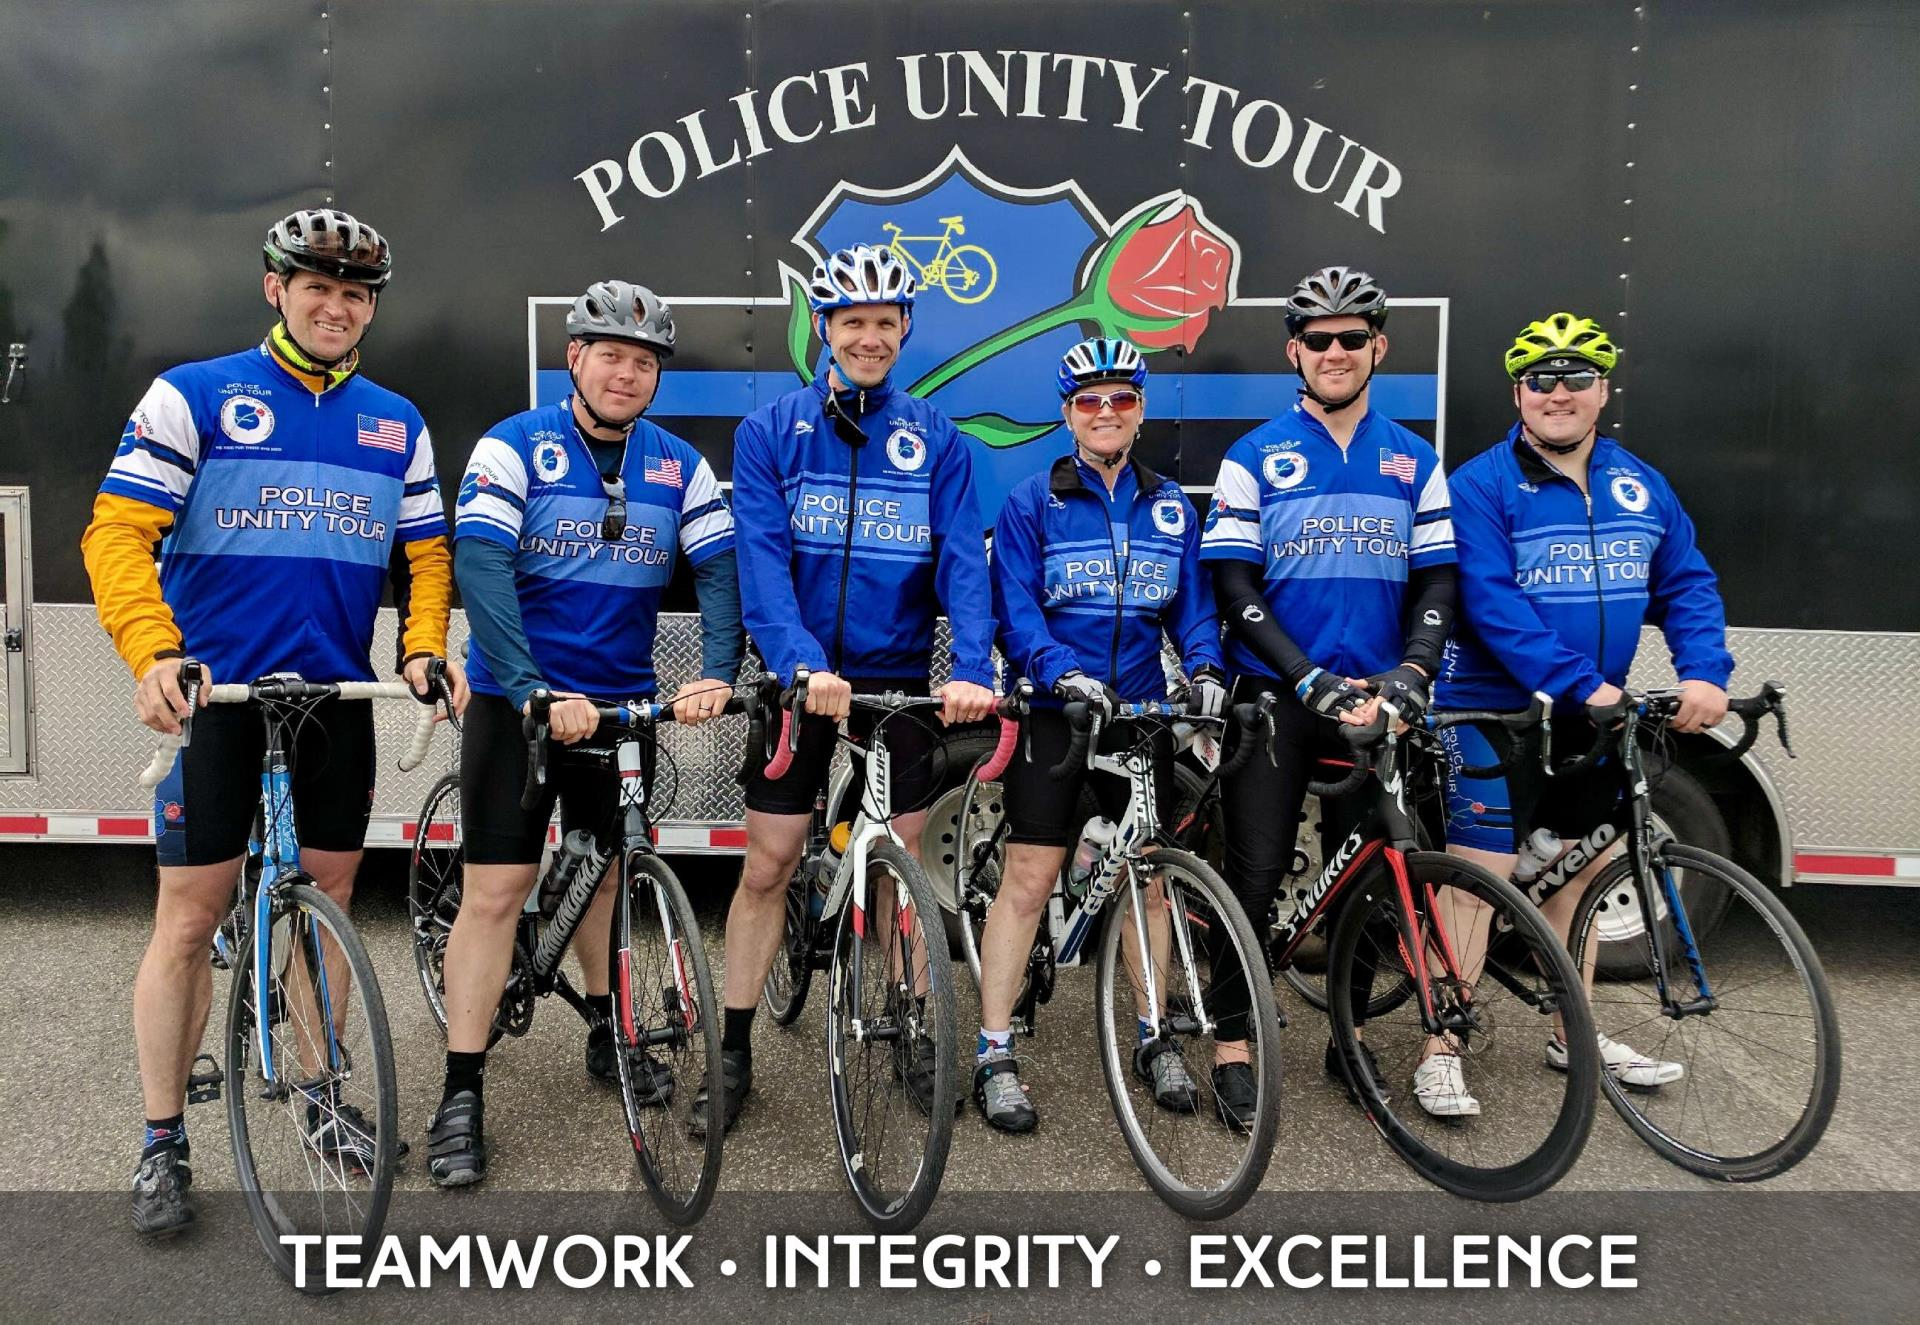 people on bicycles for Police Unity Tour